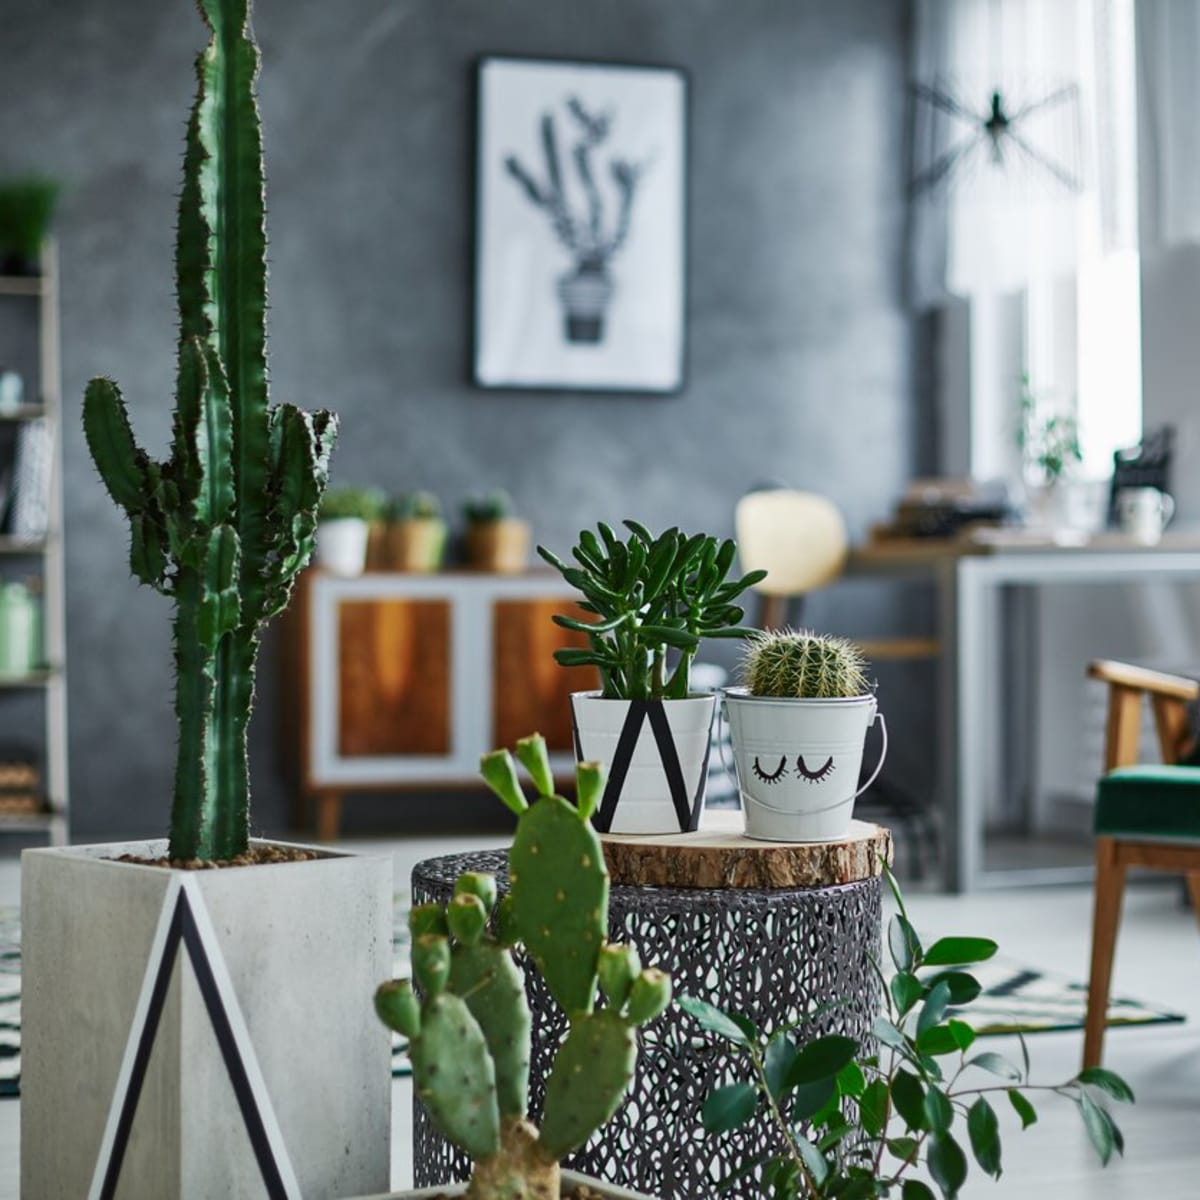 5 Super Low Maintenance Indoor Succulents For Your Chill Room Goals Organic Authority